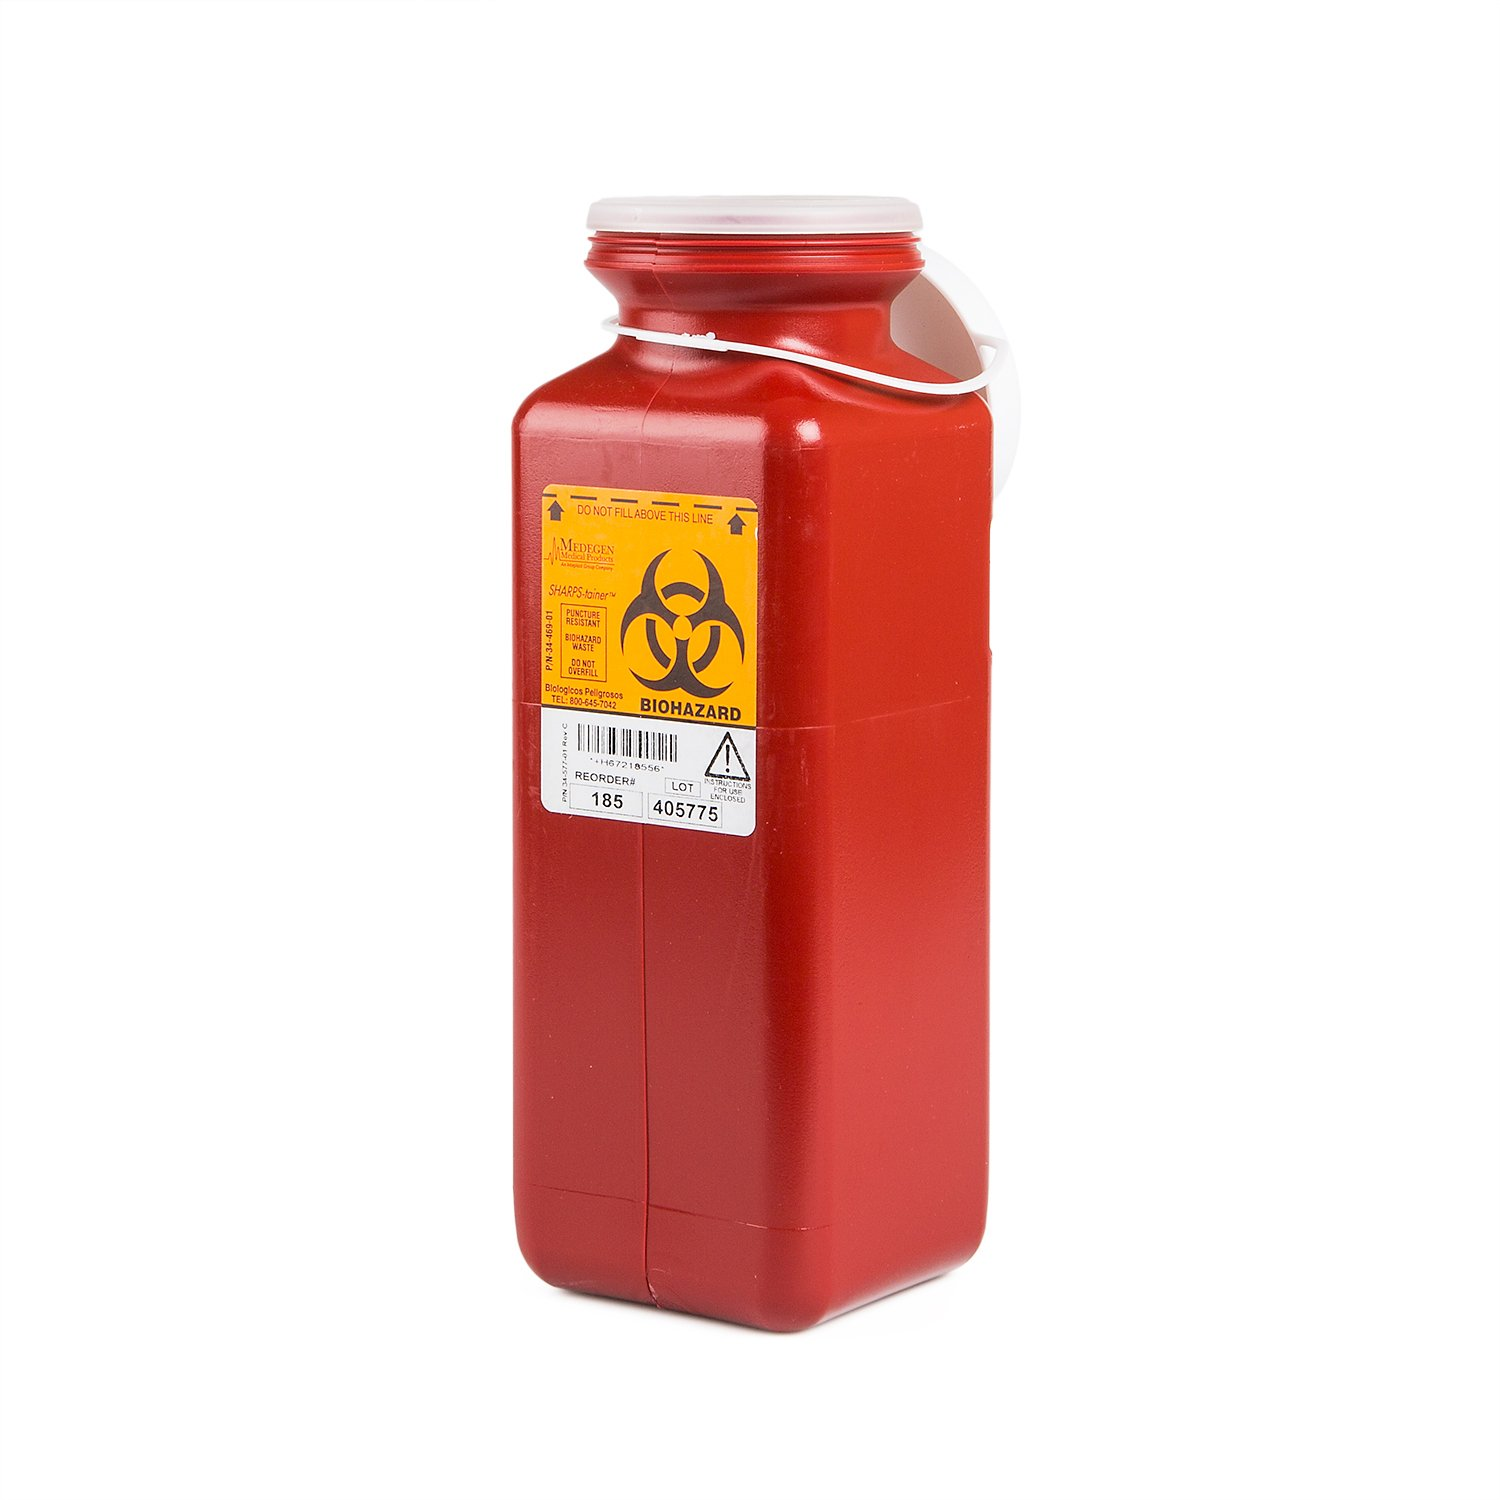 Medegen Medical Products 185 Non-Stackable Sharps Containers, Tall Tray Size, Locking Cap, 3-1/2'' x 3-1/2'' x 10'', Red (Pack of 20) by Medegen Medical Products